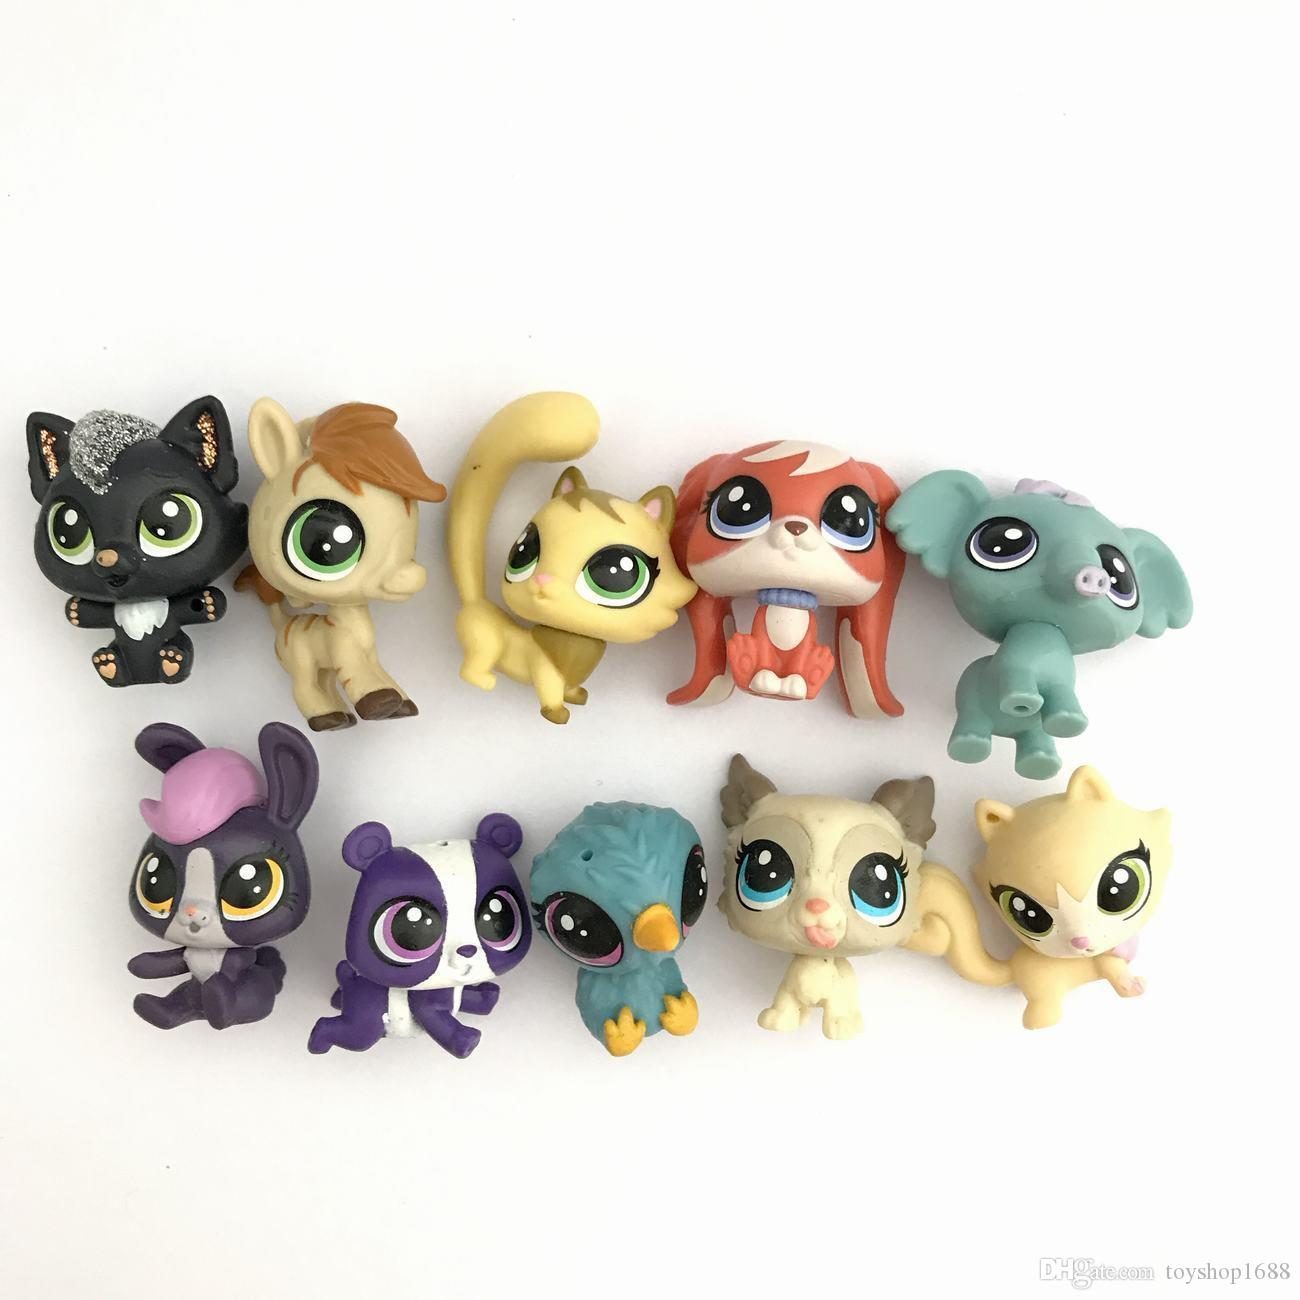 Lotmini Littlest Pet Shop Lps Doll Animal Pet Bird Cat Dog Elephant